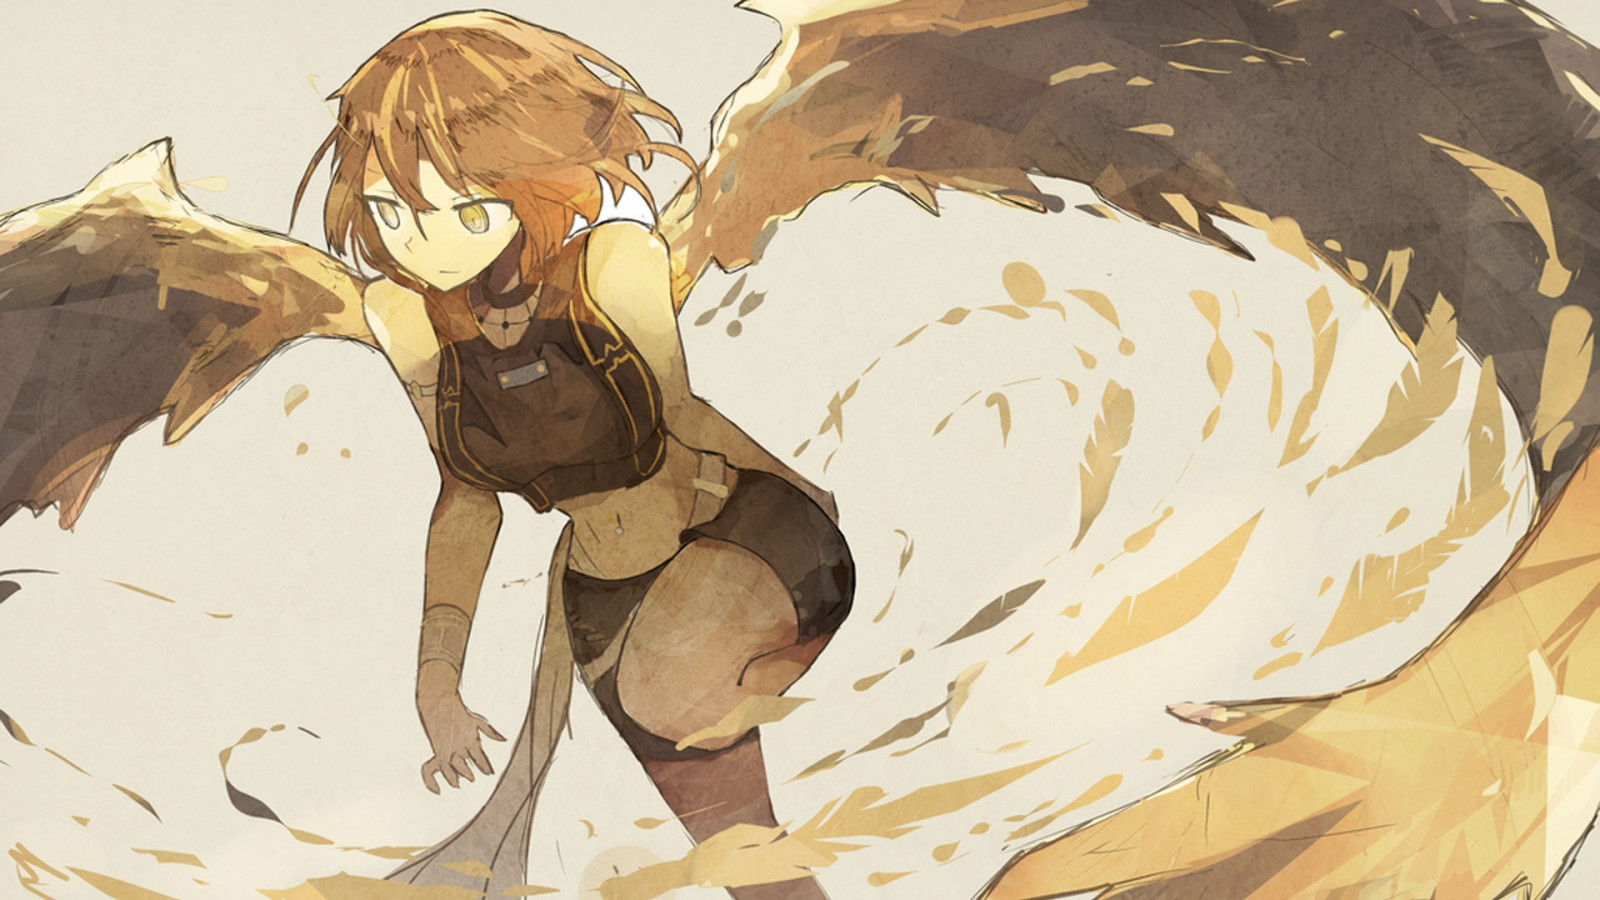 Girl Hentia Wallpapers Hd Wallpaper Drawing Illustration Anime Girls Wings